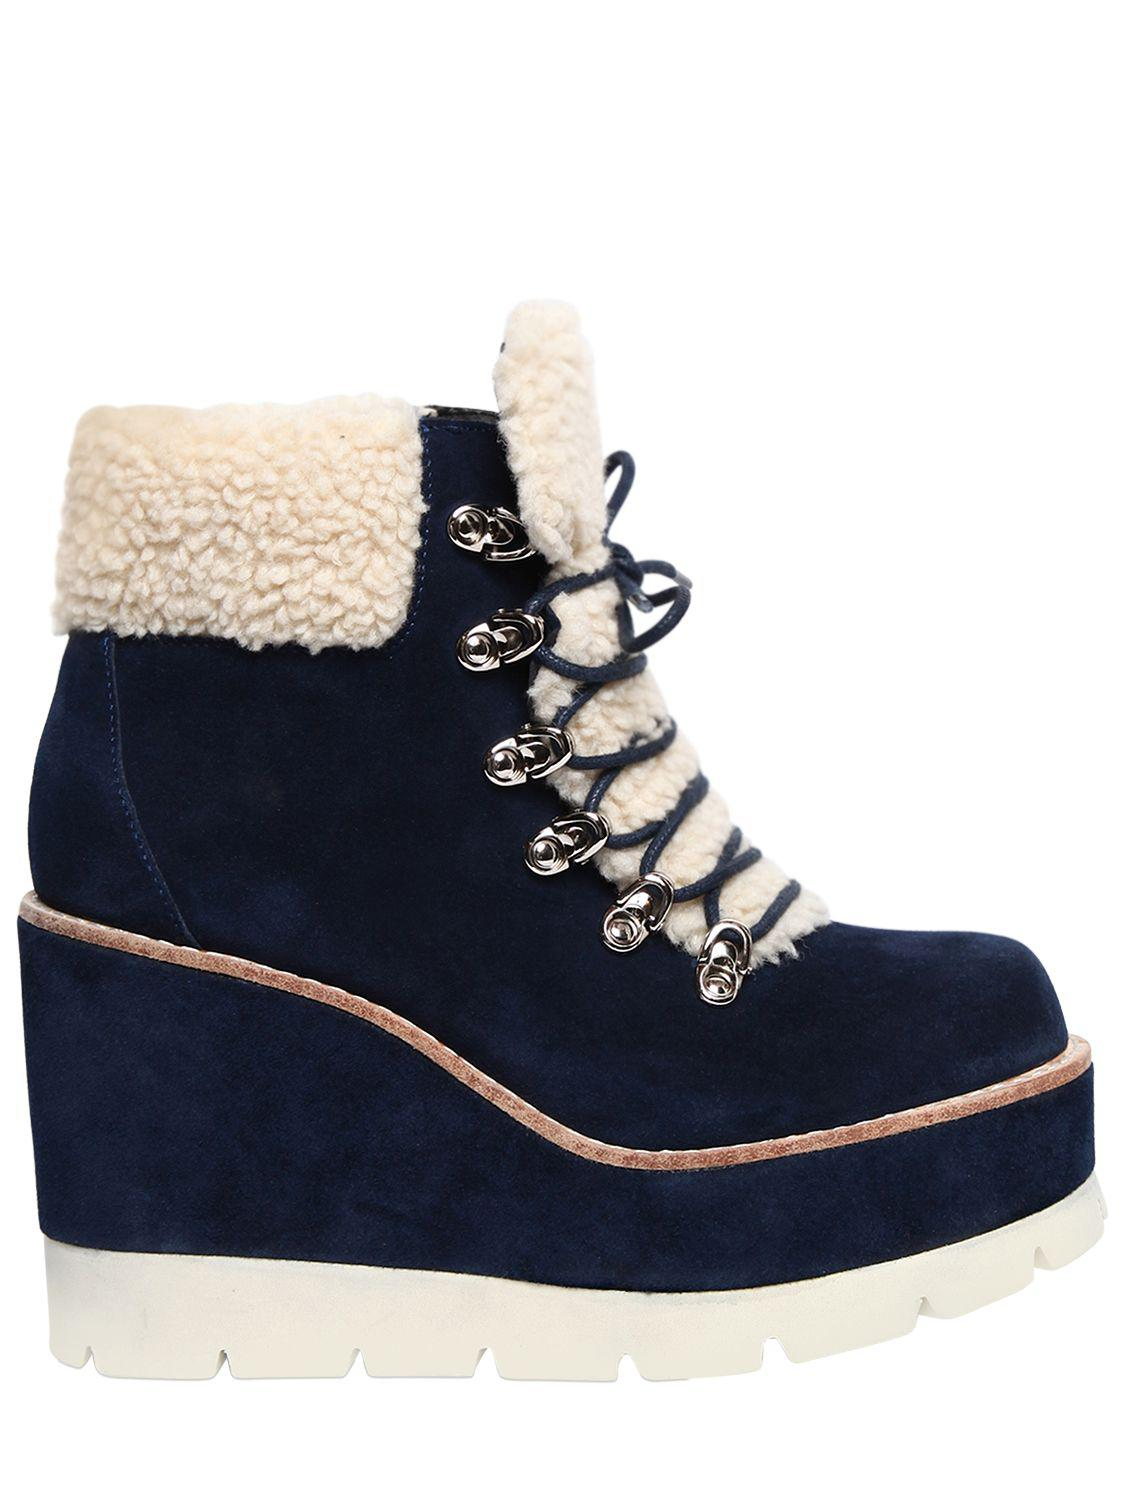 Jeffrey Campbell 80MM FOWLER SUEDE & FAUX SHEARLING BOOTS bM0nZS9w